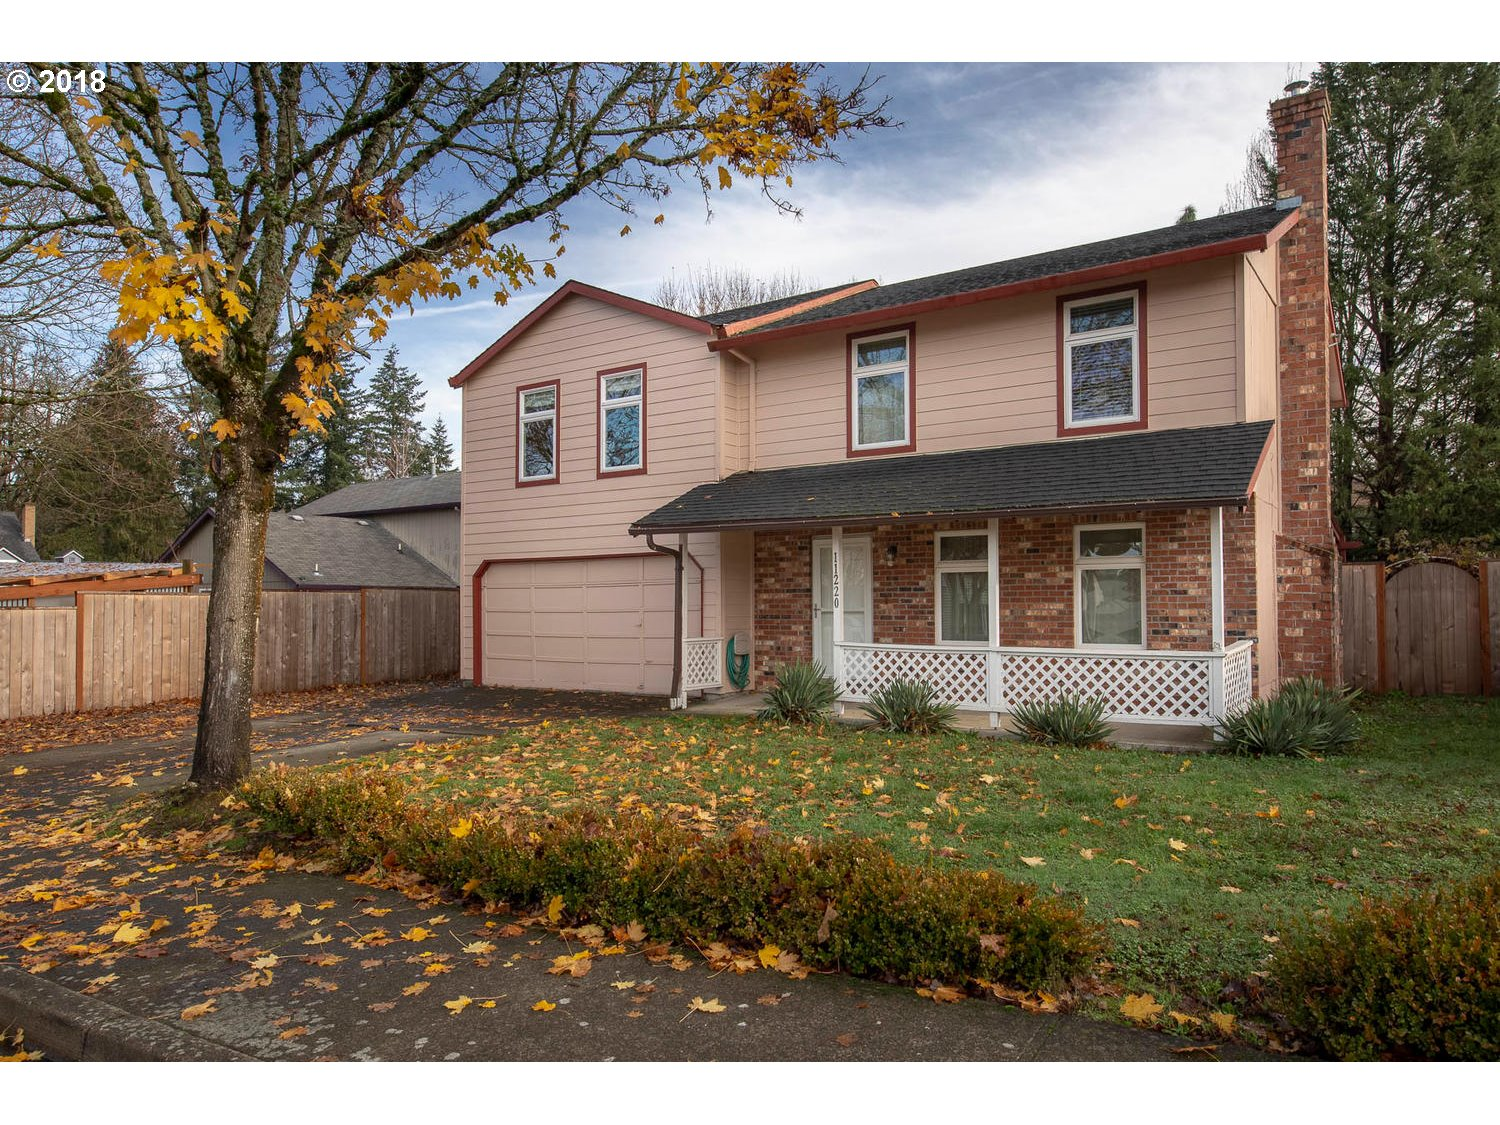 Photo for 11220 SW 66TH AVE, Portland, OR 97223 (MLS # 18155697)